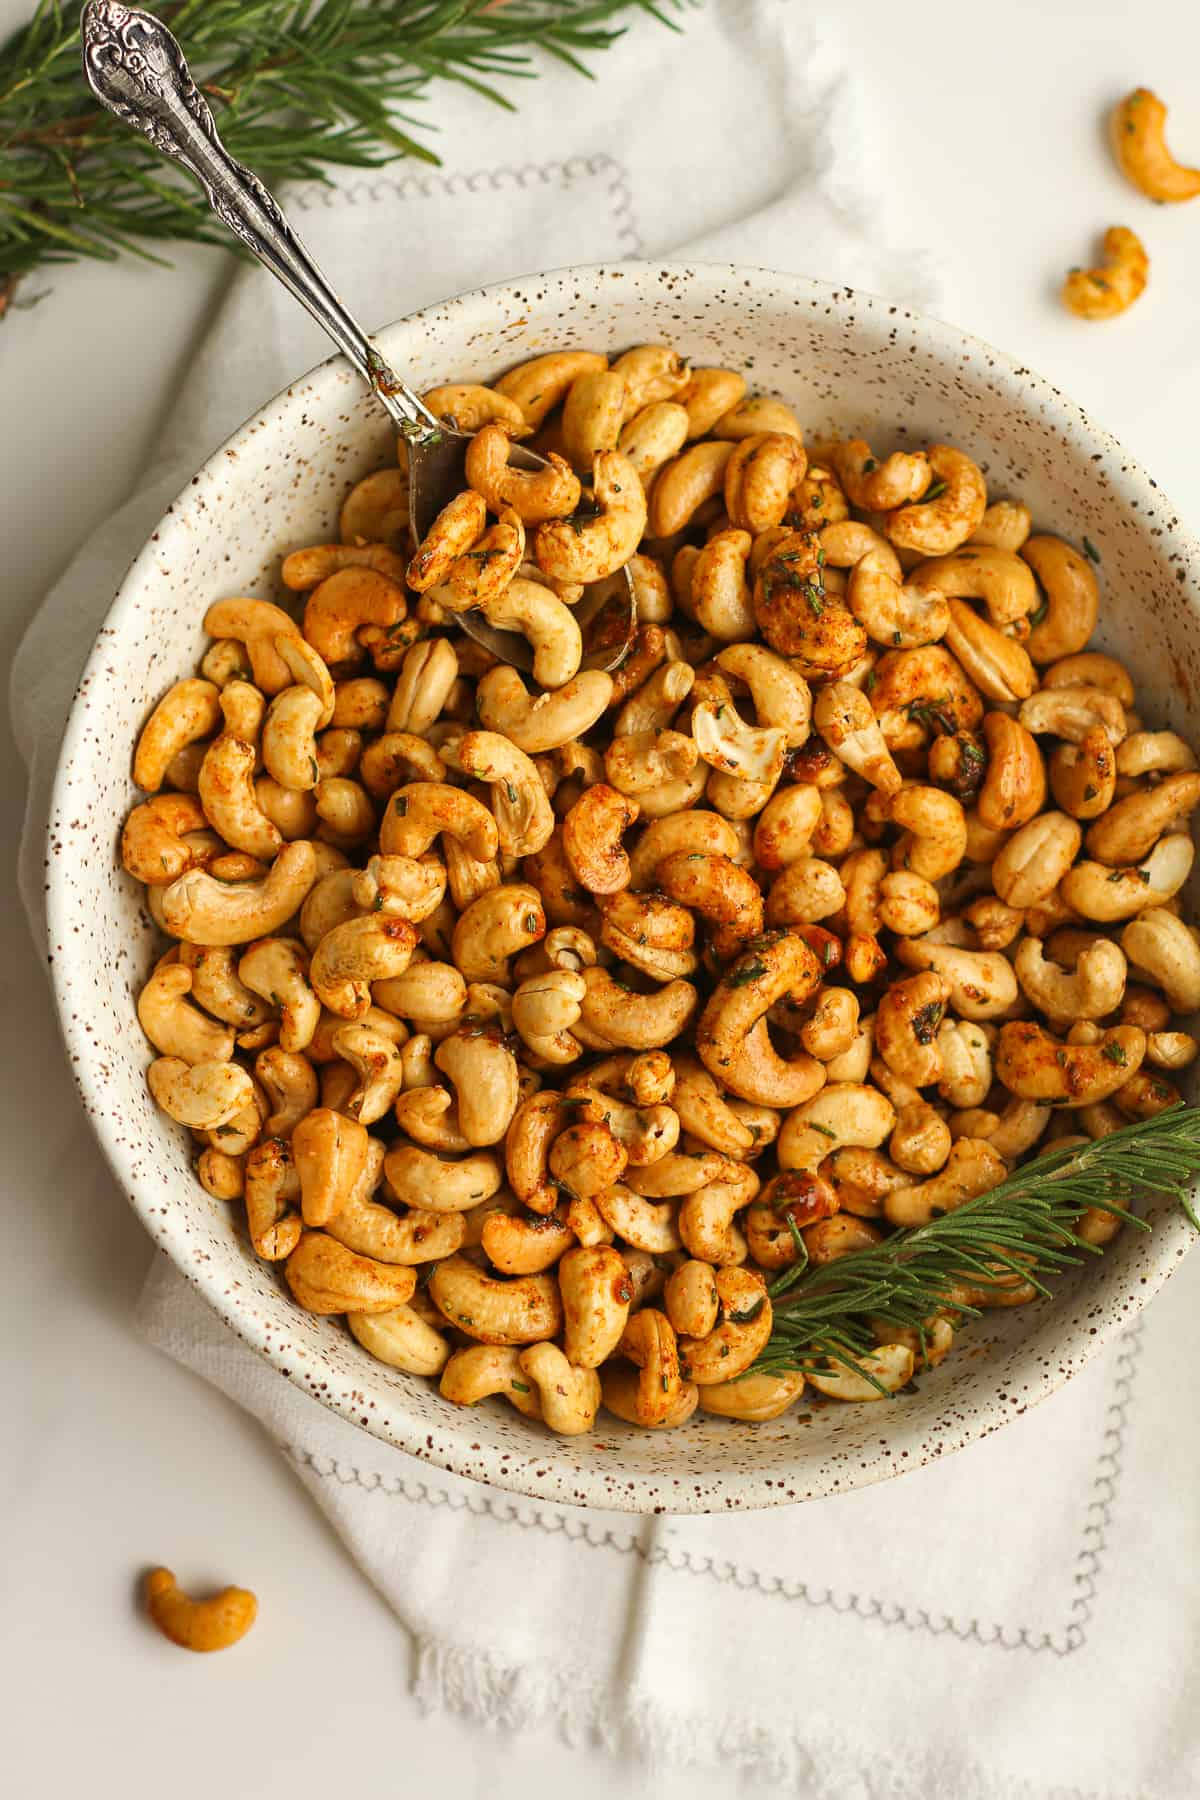 Overhead shot of a bowl of roasted rosemary cashews with a spoon.